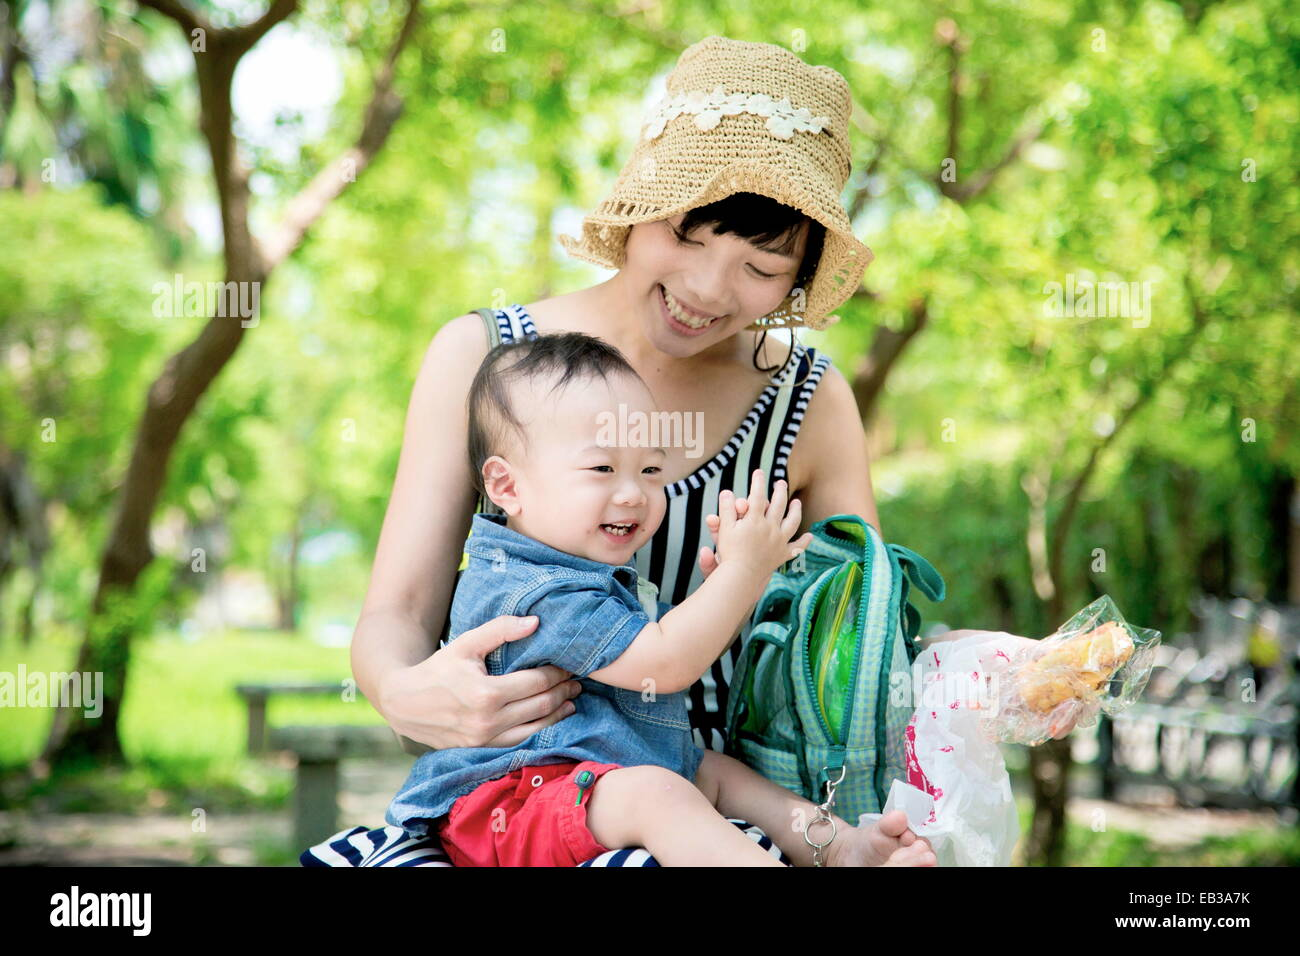 Mother with son (6-11 months) in park - Stock Image